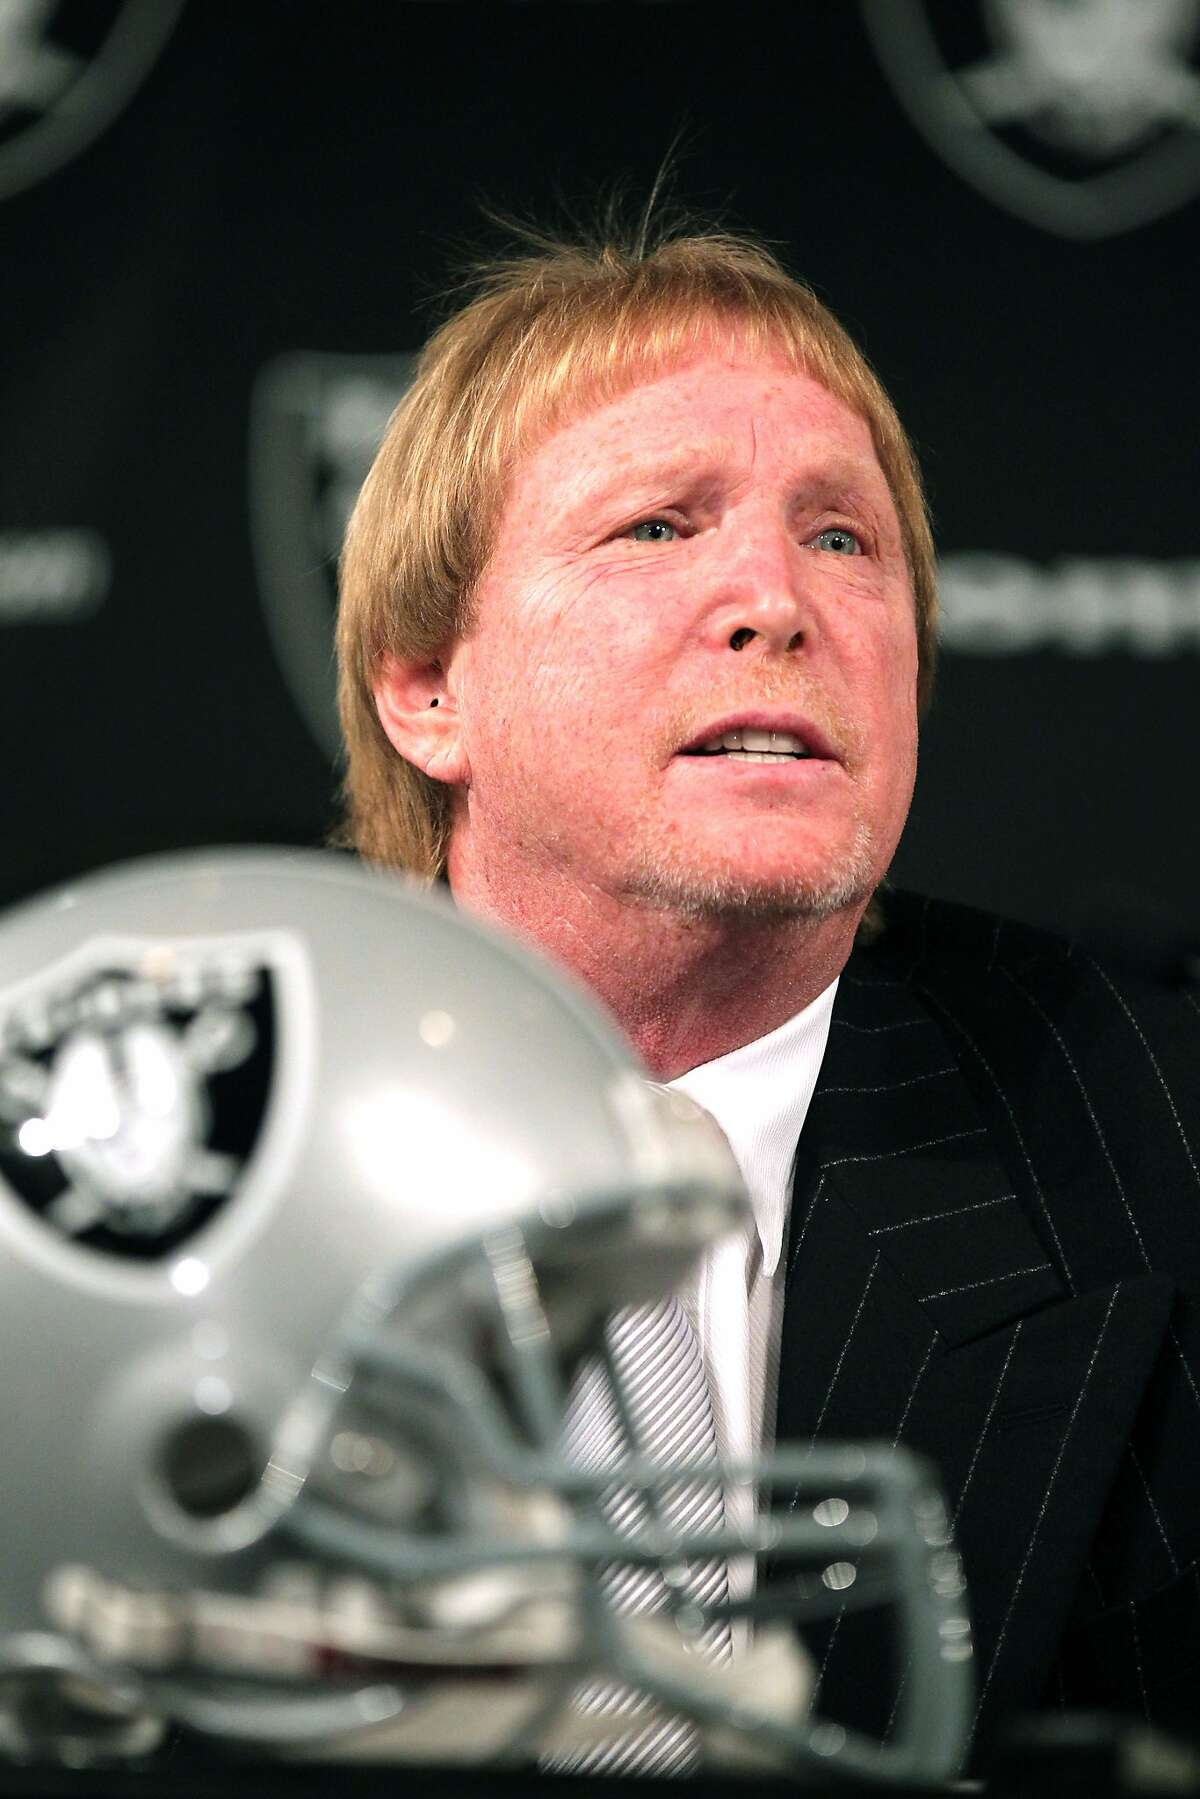 The Oakland Raiders owner Mark Davis listens to a question from the media. He introduced, Raiders new General Manager Reggie McKenzie at a press conference at Raiders headquarters in Oakland Tuesday, January 10, 2012